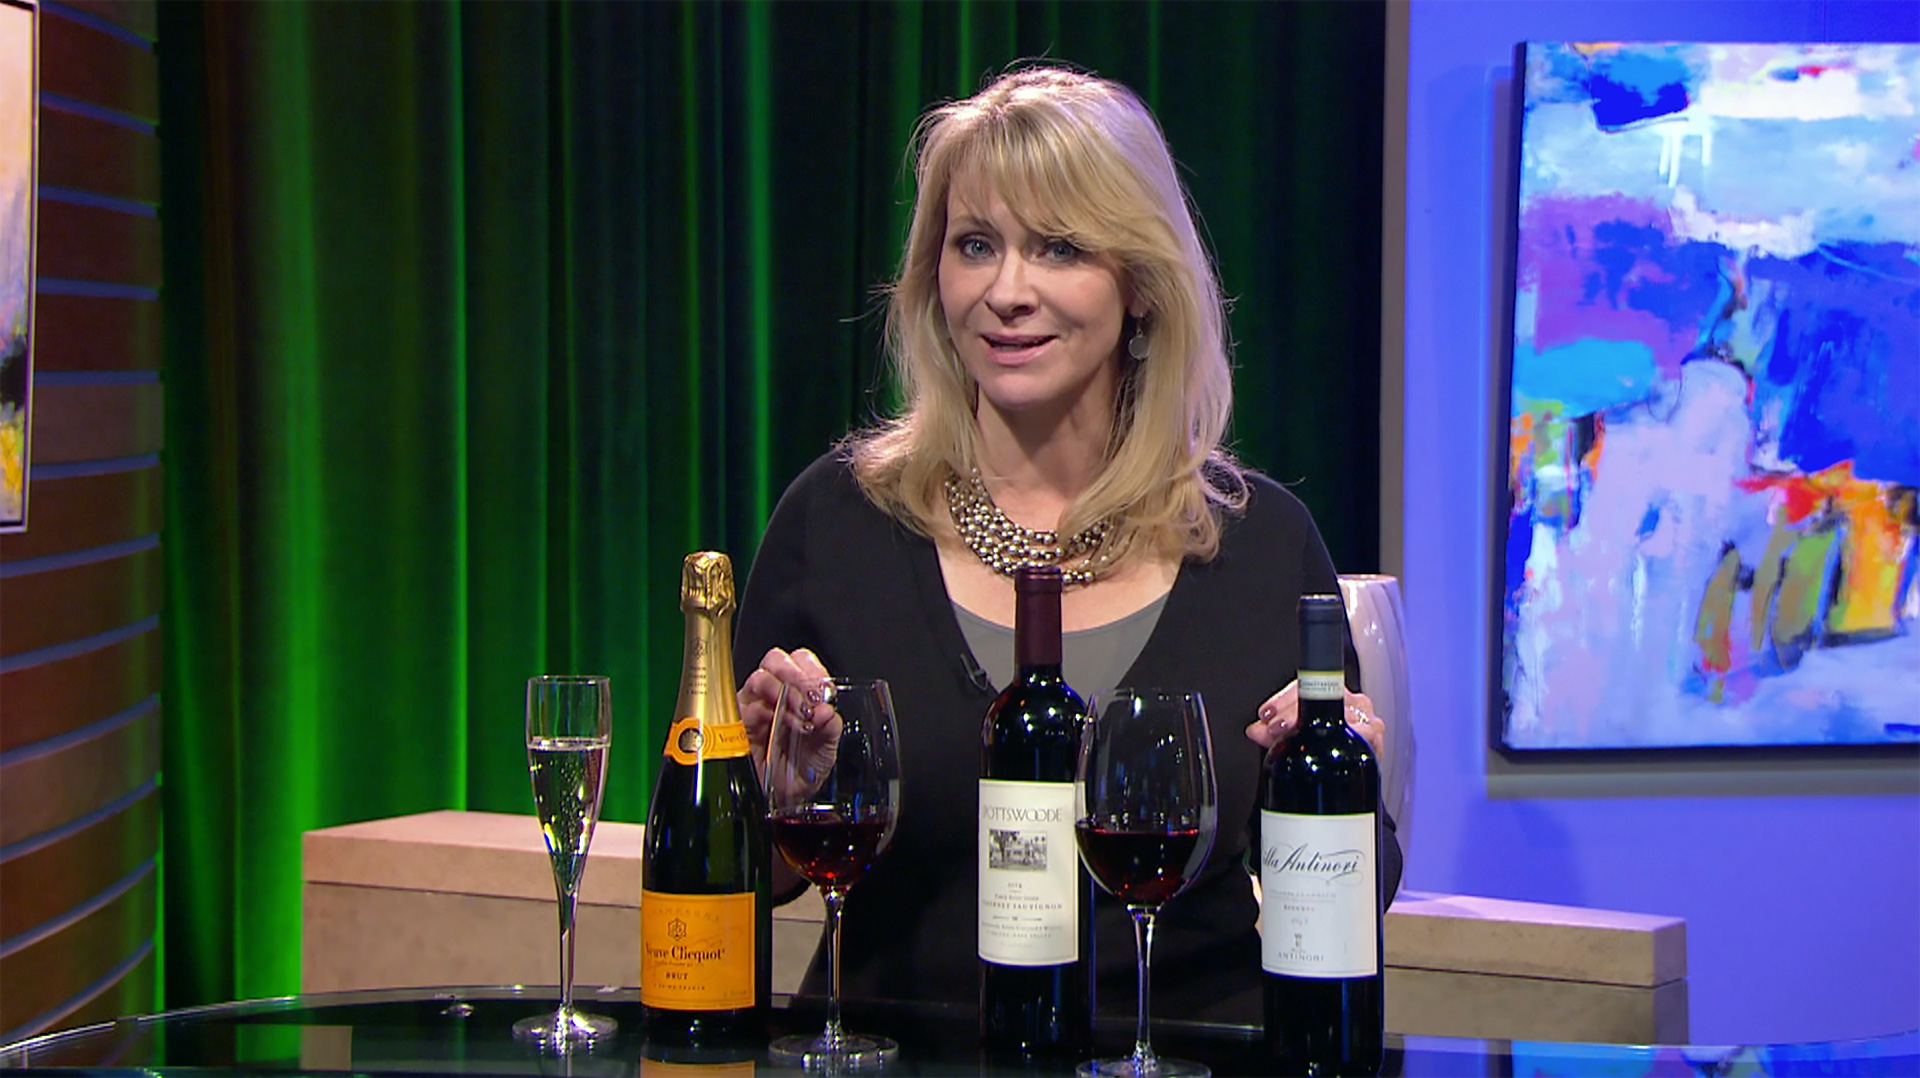 All about women in the wine industry